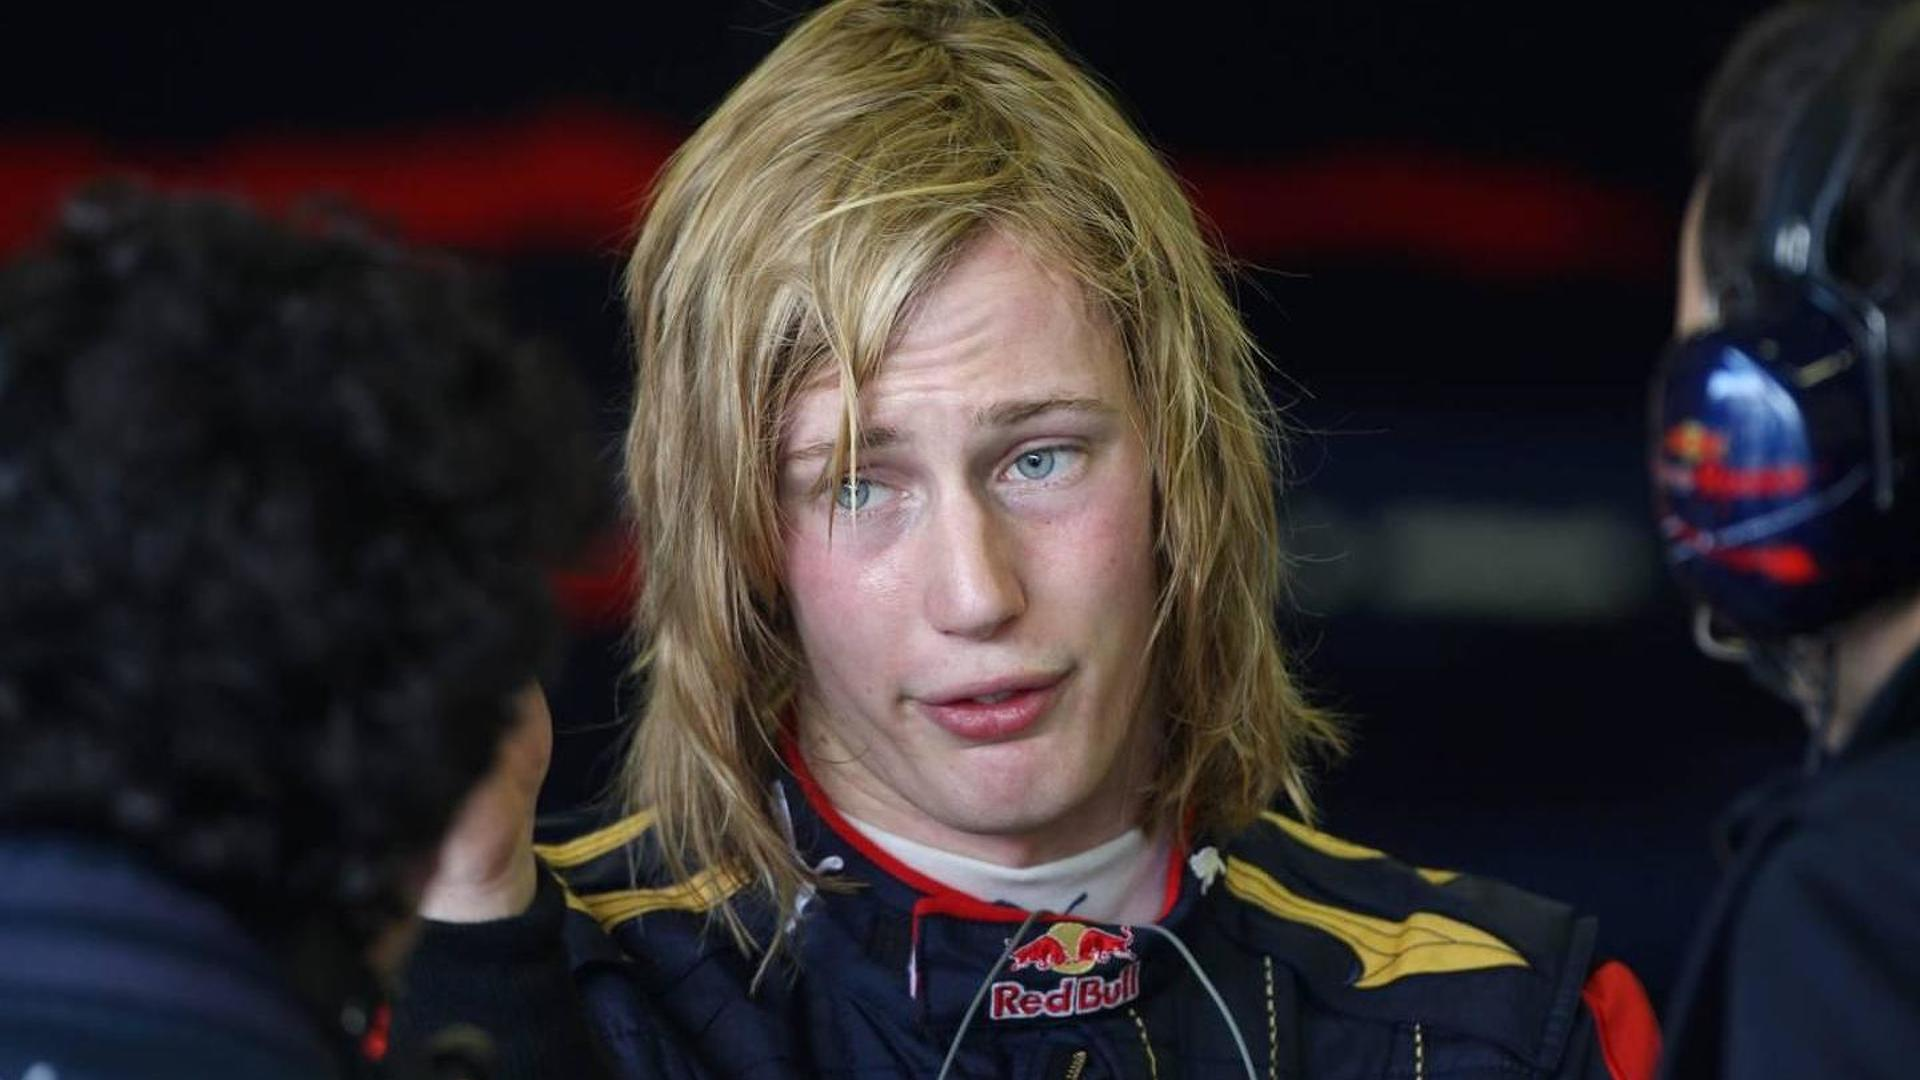 Red Bull confirms Brendon Hartley ousting